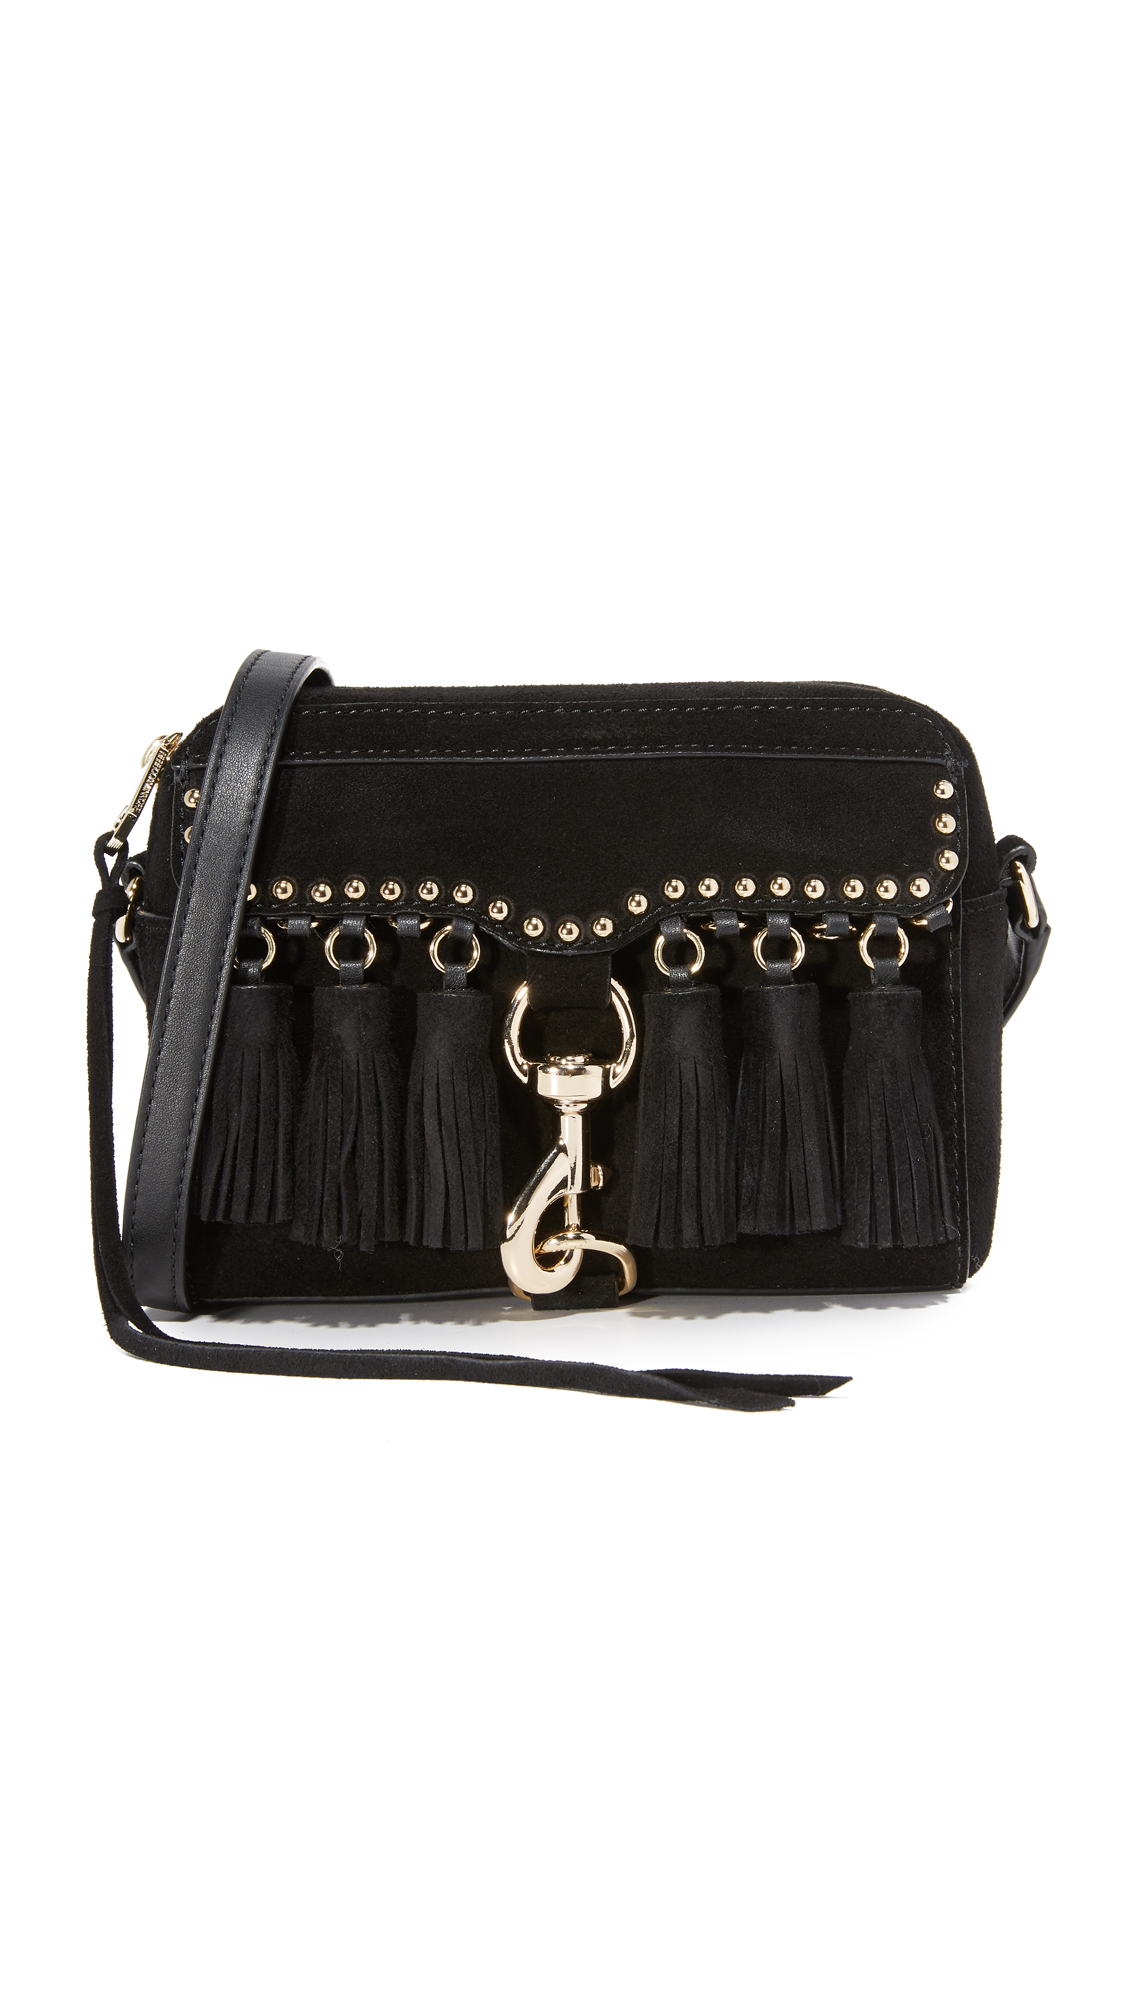 Rebecca Minkoff Multi Tassel Camera Bag - Black